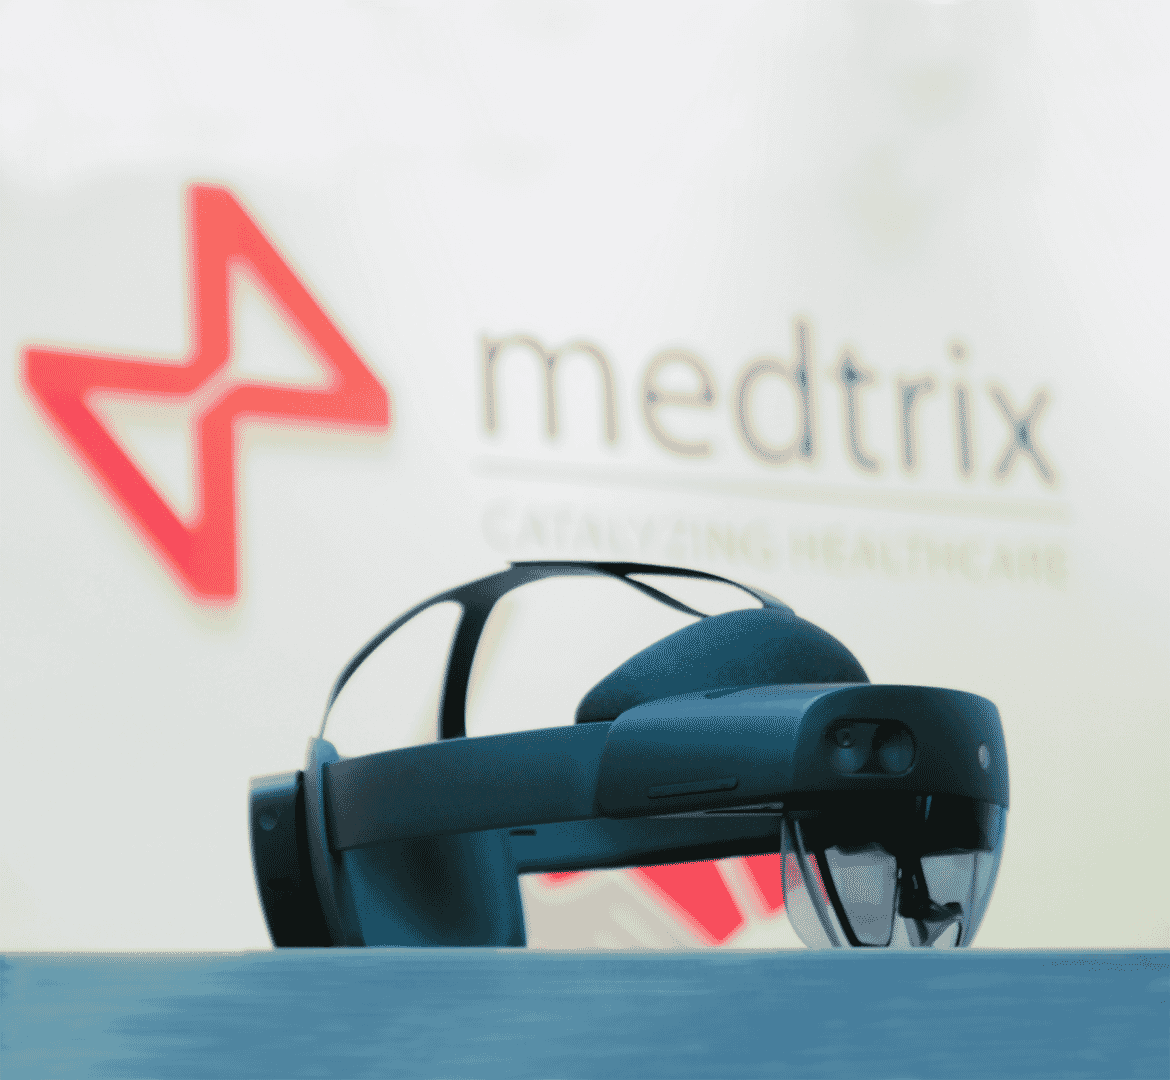 About medtrix